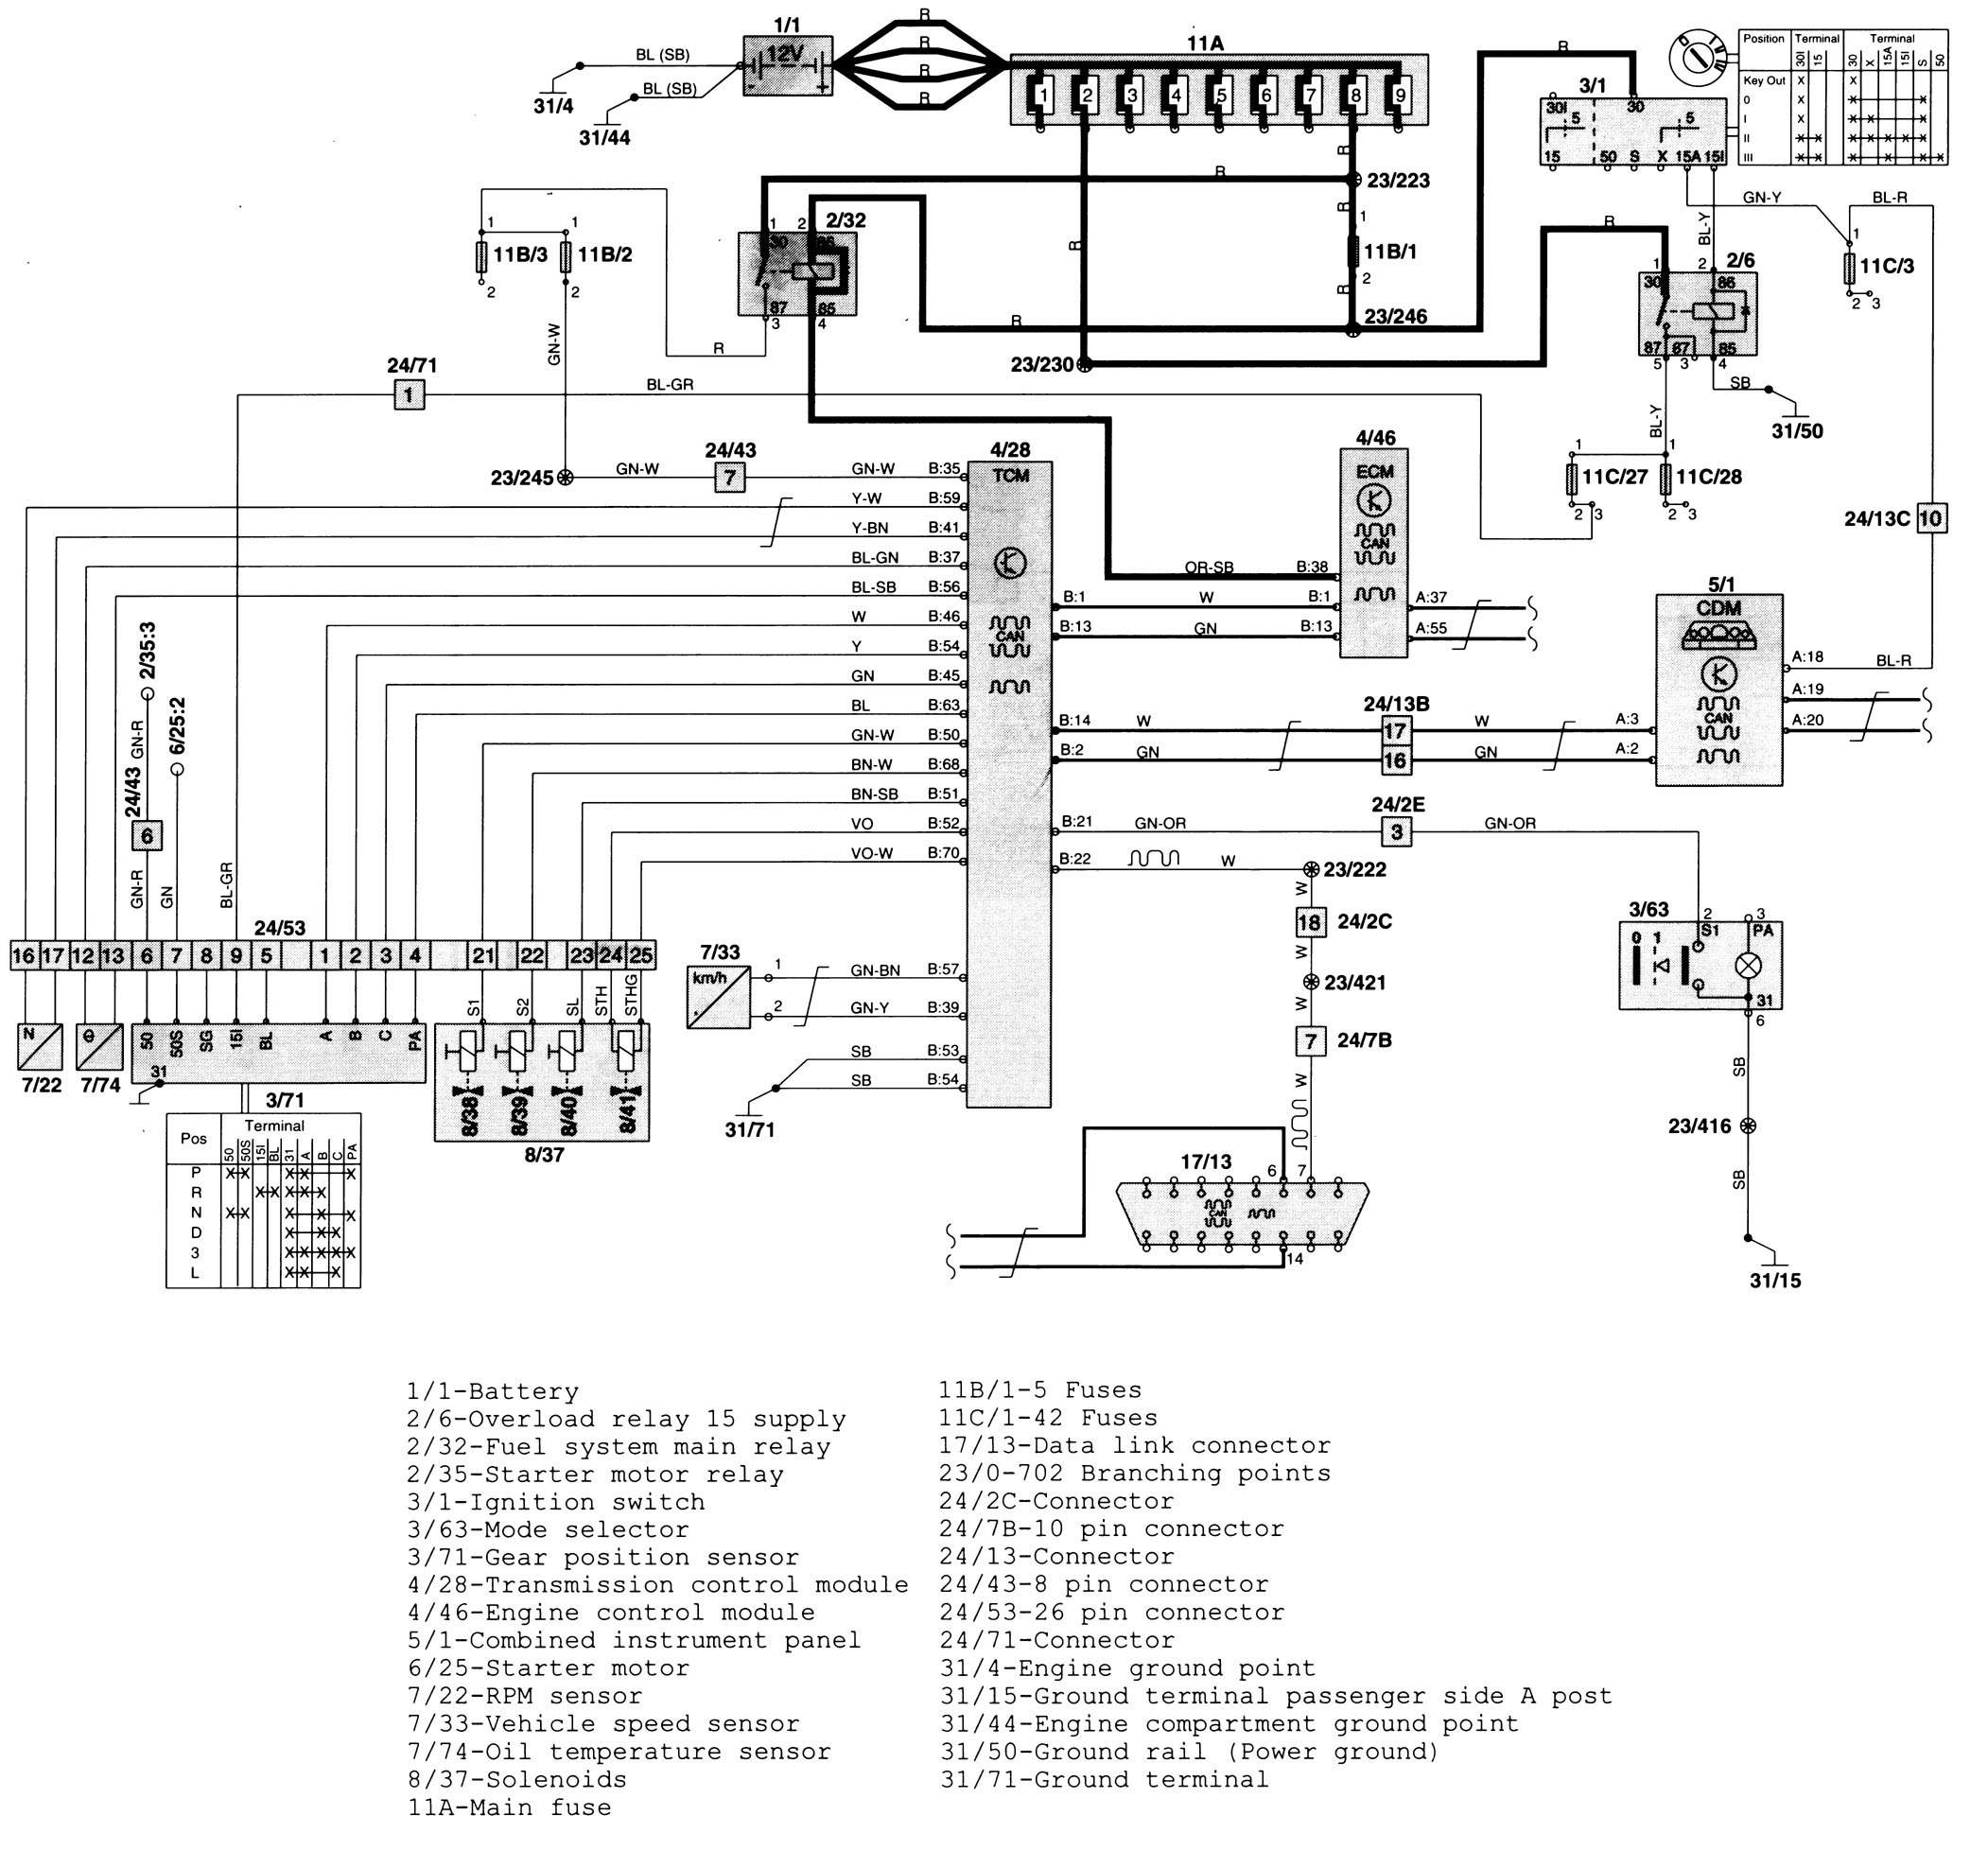 Volvo S70 Wiring Diagram Pdf - Wiring Diagram Write on volvo v70 rear suspension, volvo v70 starter, volvo v70 power, volvo v70 vacuum diagram, volvo v70 schematics, volvo v70 distributor, volvo amazon wiring diagram, volvo ignition wiring diagram, volvo t5 engine diagram, volvo s70 wiring-diagram, volvo v70 firing order, volvo v70 oil pump, volvo v70 repair, volvo 240 wiring diagram, volvo v70 battery, volvo v70 cooling, volvo v70 fuse box diagram, volvo v70 timing marks, volvo v70 thermostat, volvo v70 tailgate wiring harness,